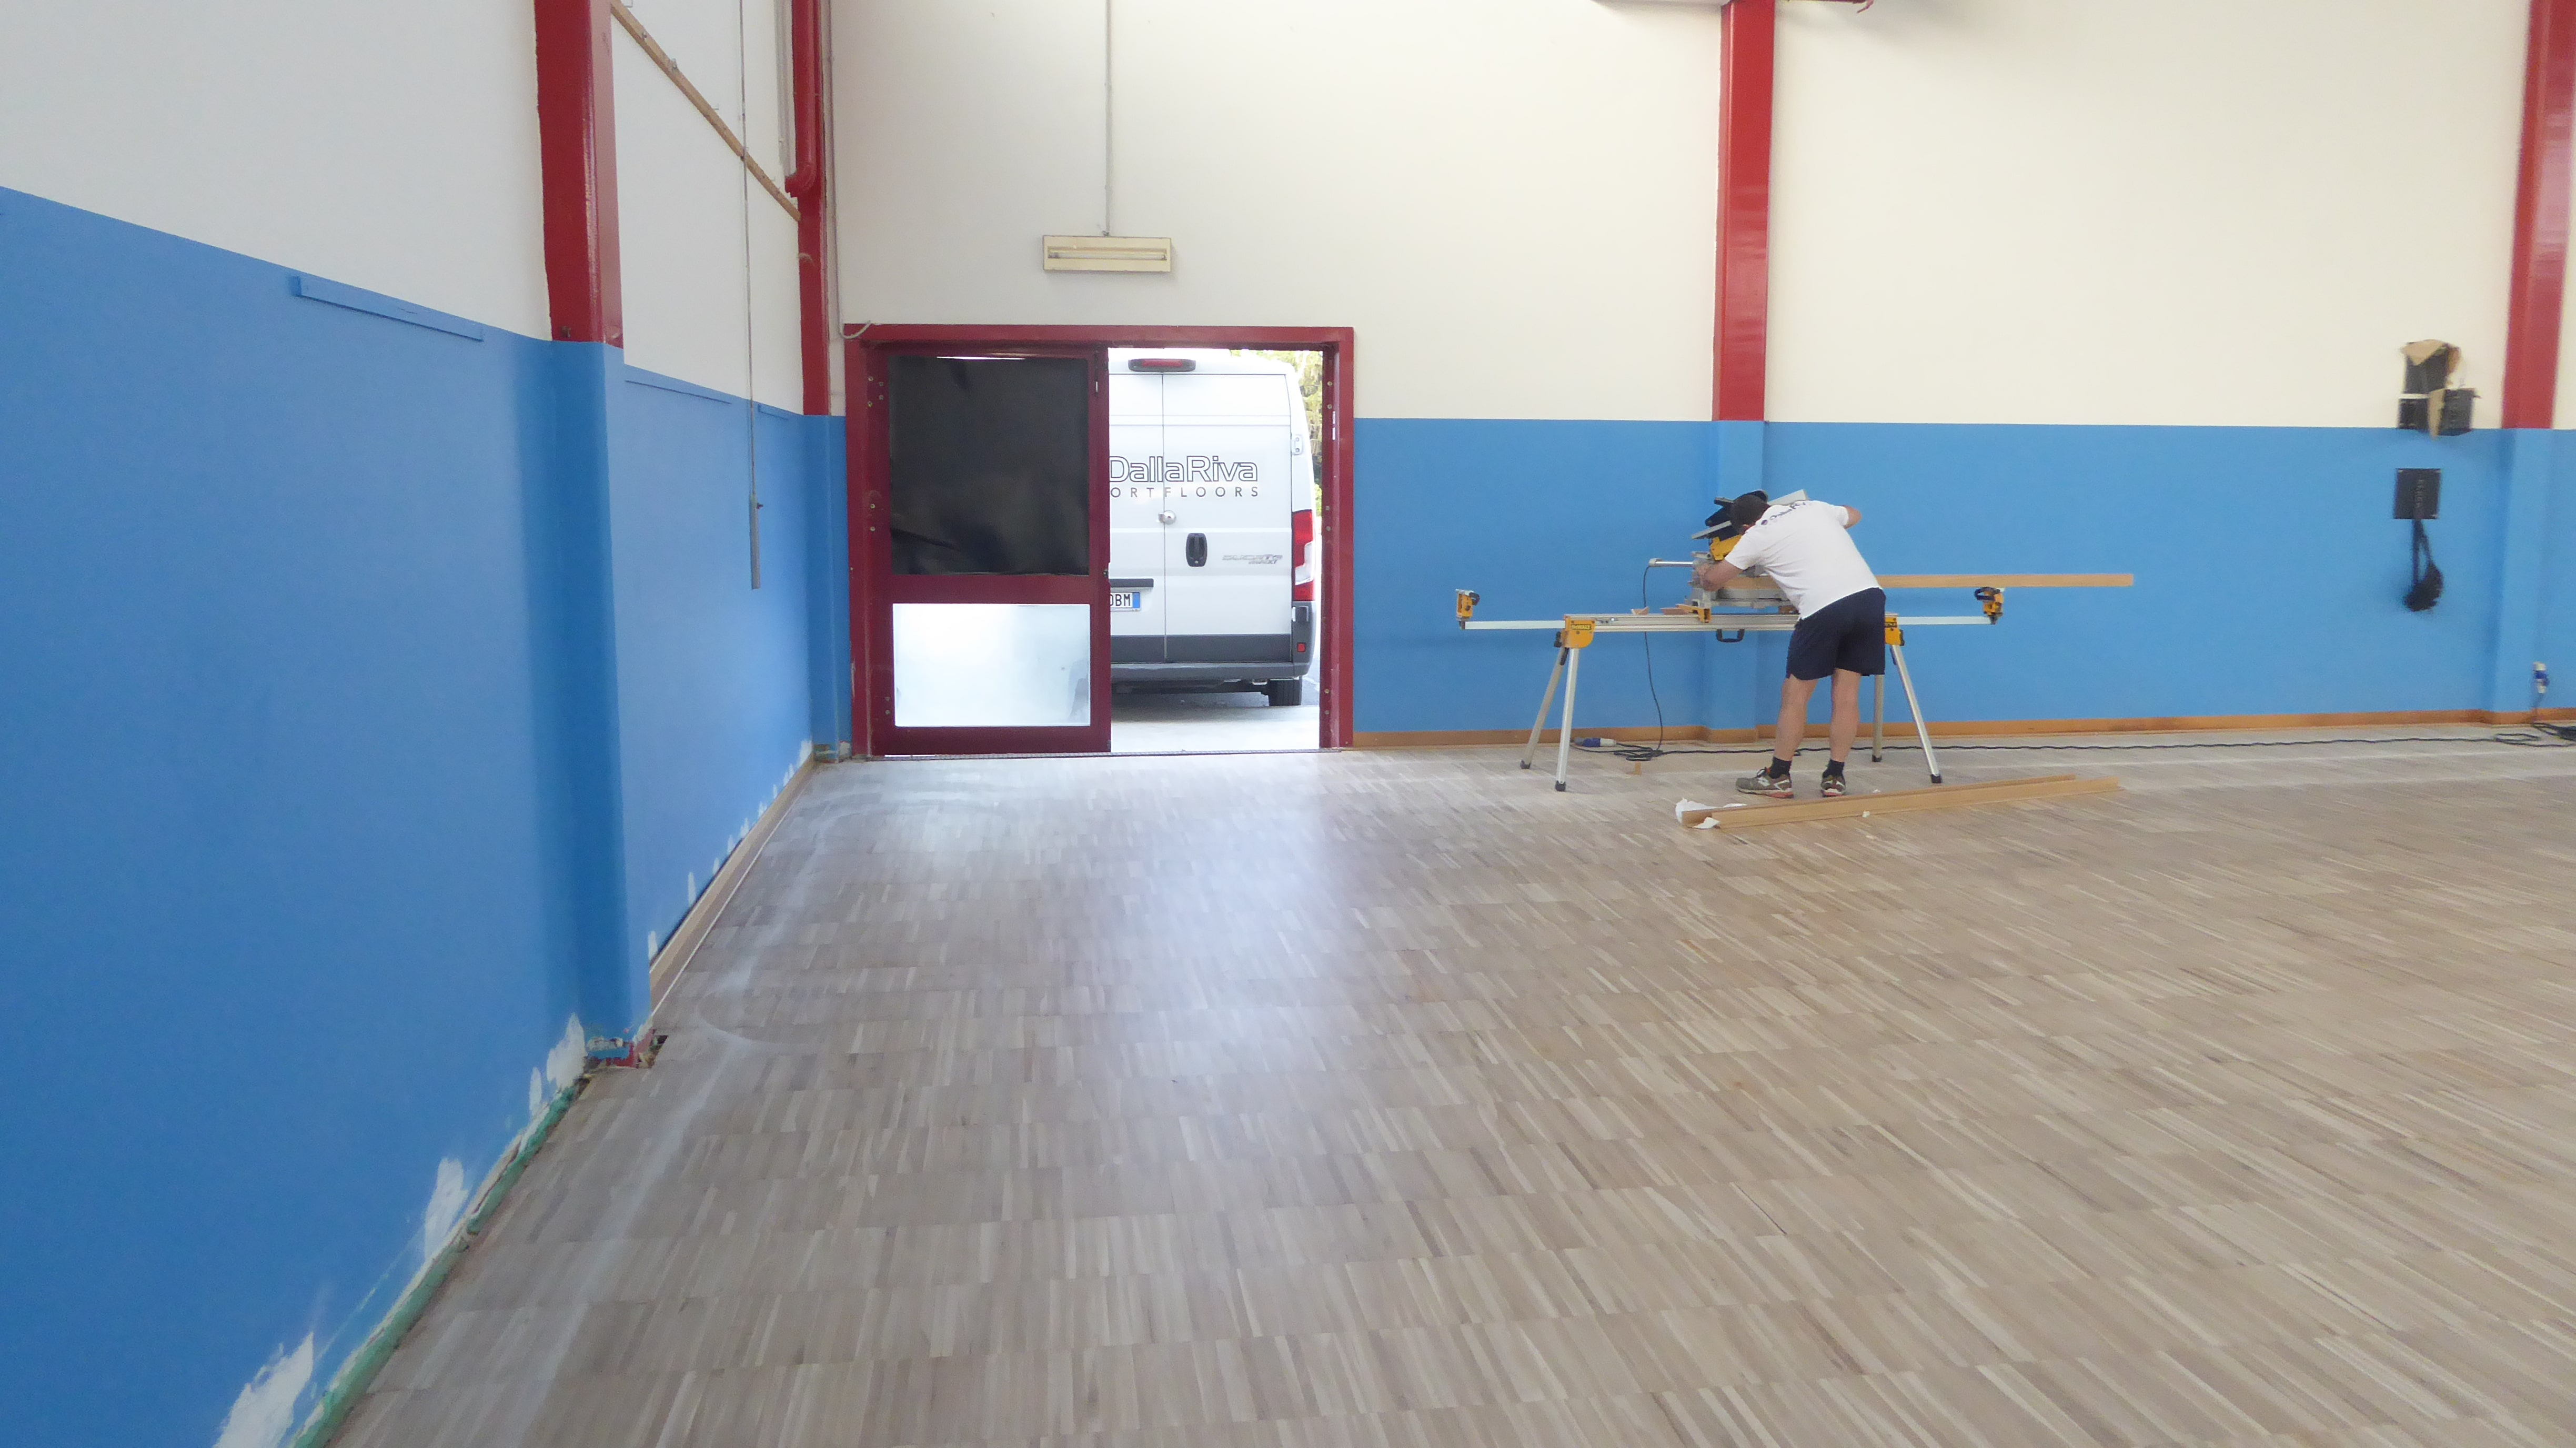 The technicians Dalla Riva engaged in the arrangement of the skirting board